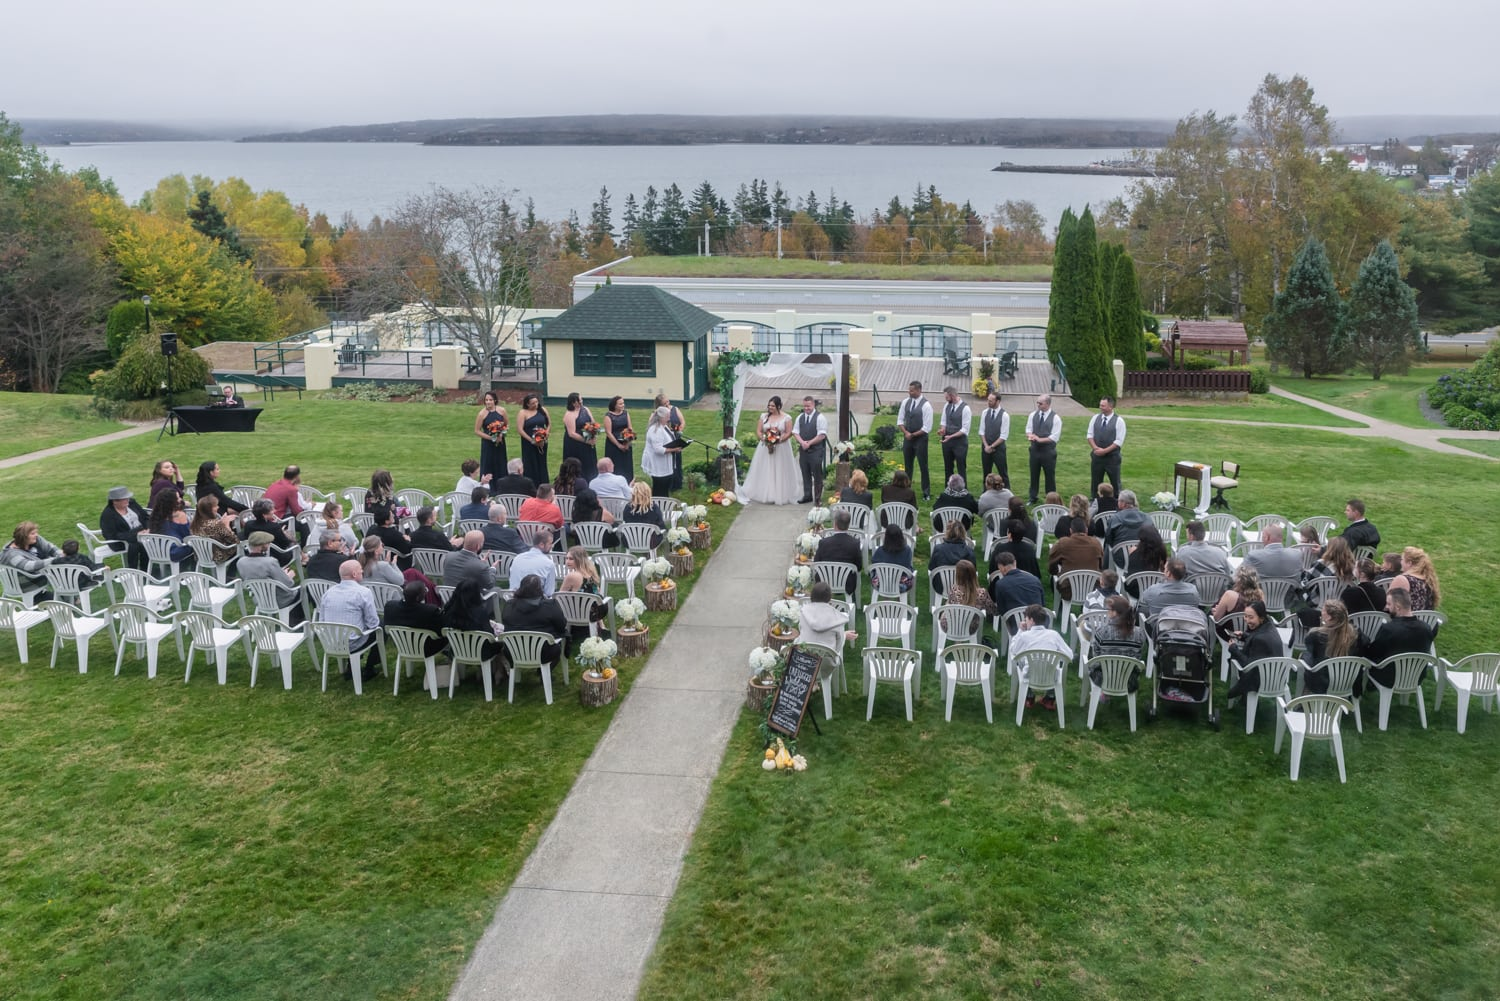 An aerial view of the bride and groom's wedding ceremony outside at Digby Pines.